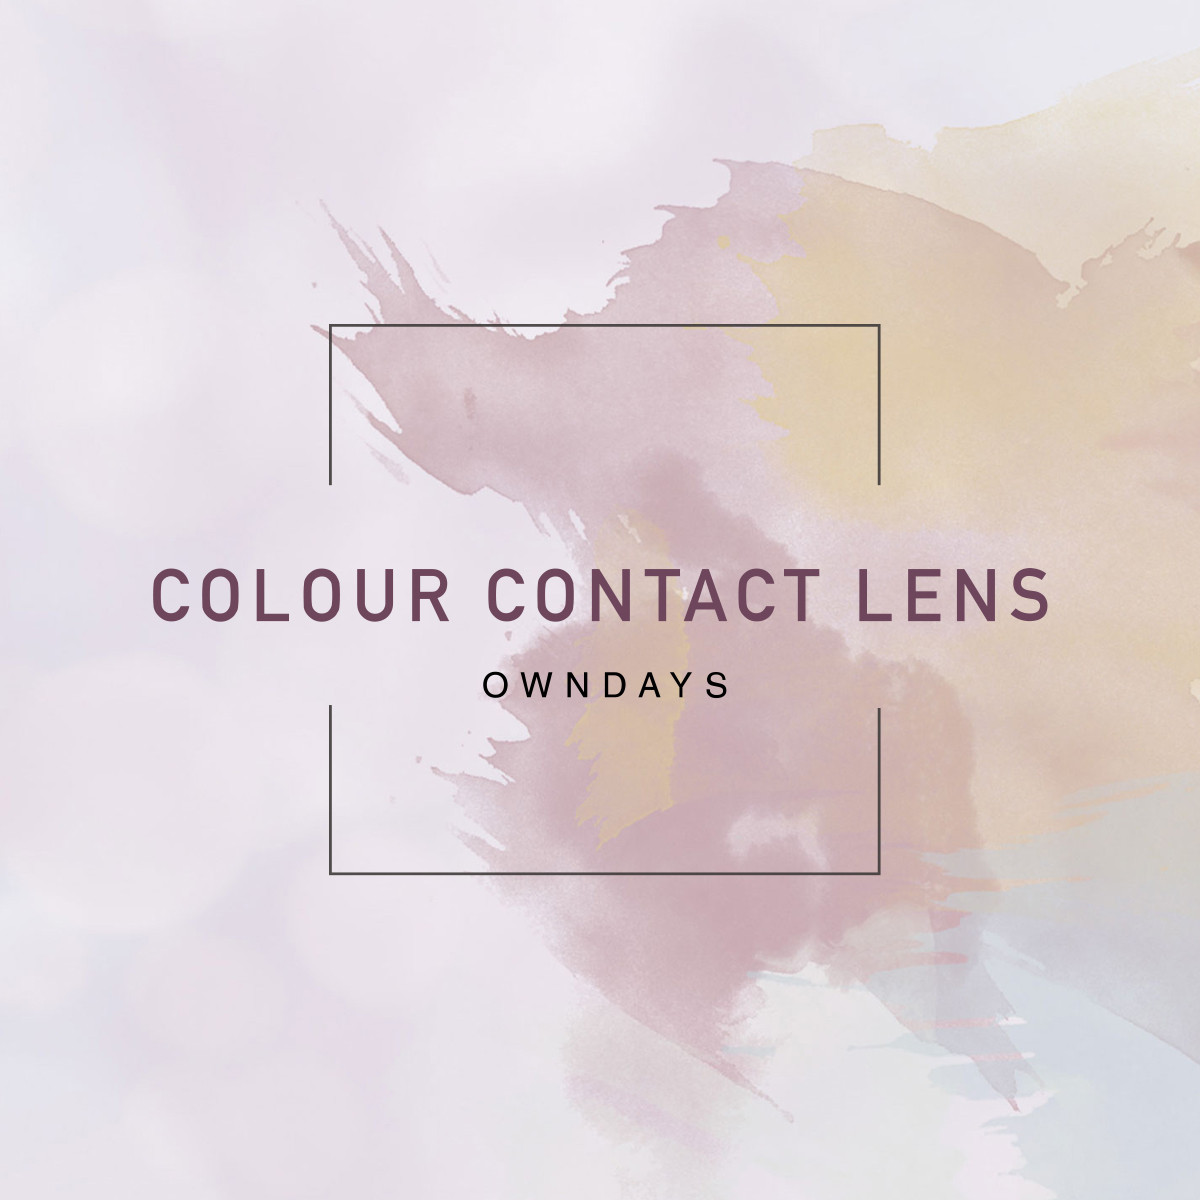 OWNDAYS COLOUR CONTACT LENS